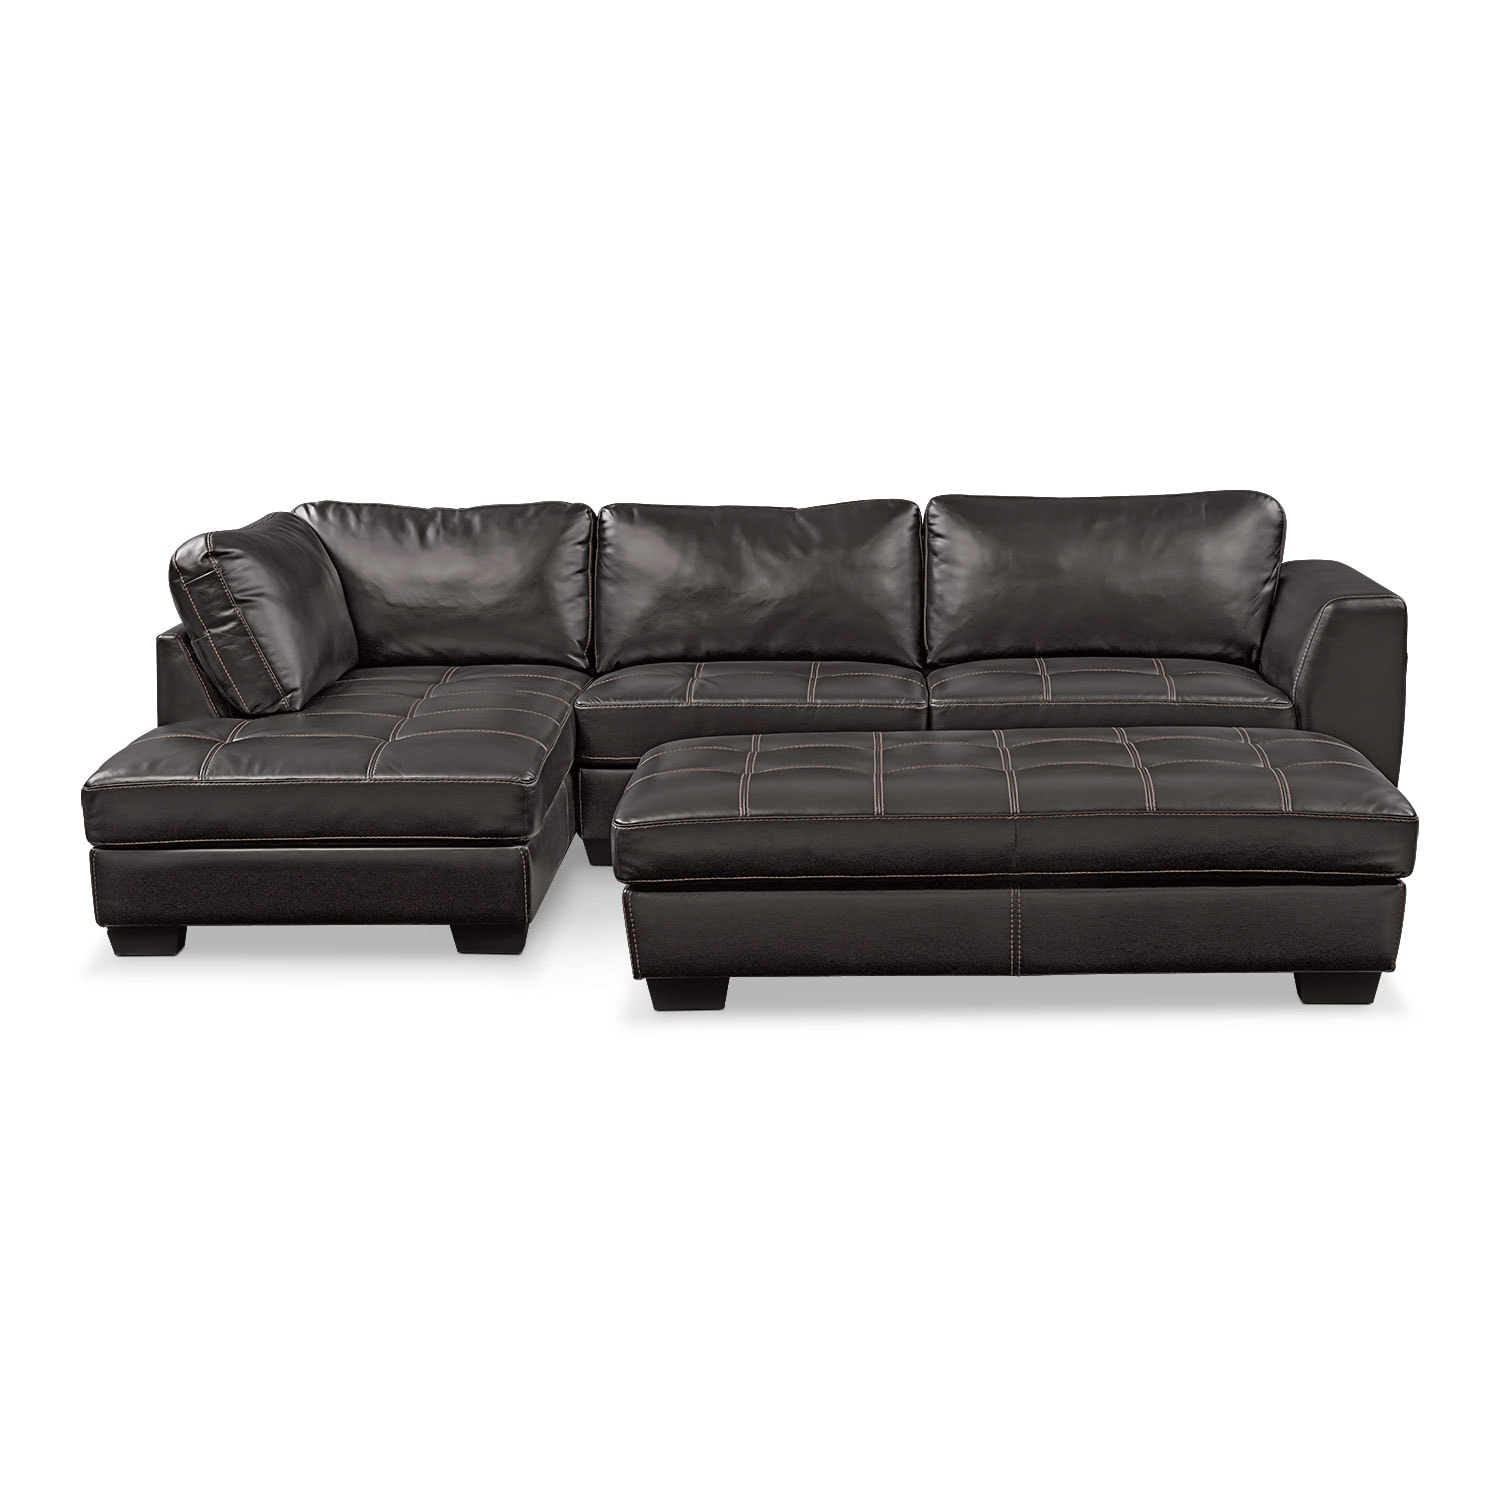 Santana 2-Piece Sectional with Left-Facing Chaise Plus FREE Cocktail Ottoman - Black